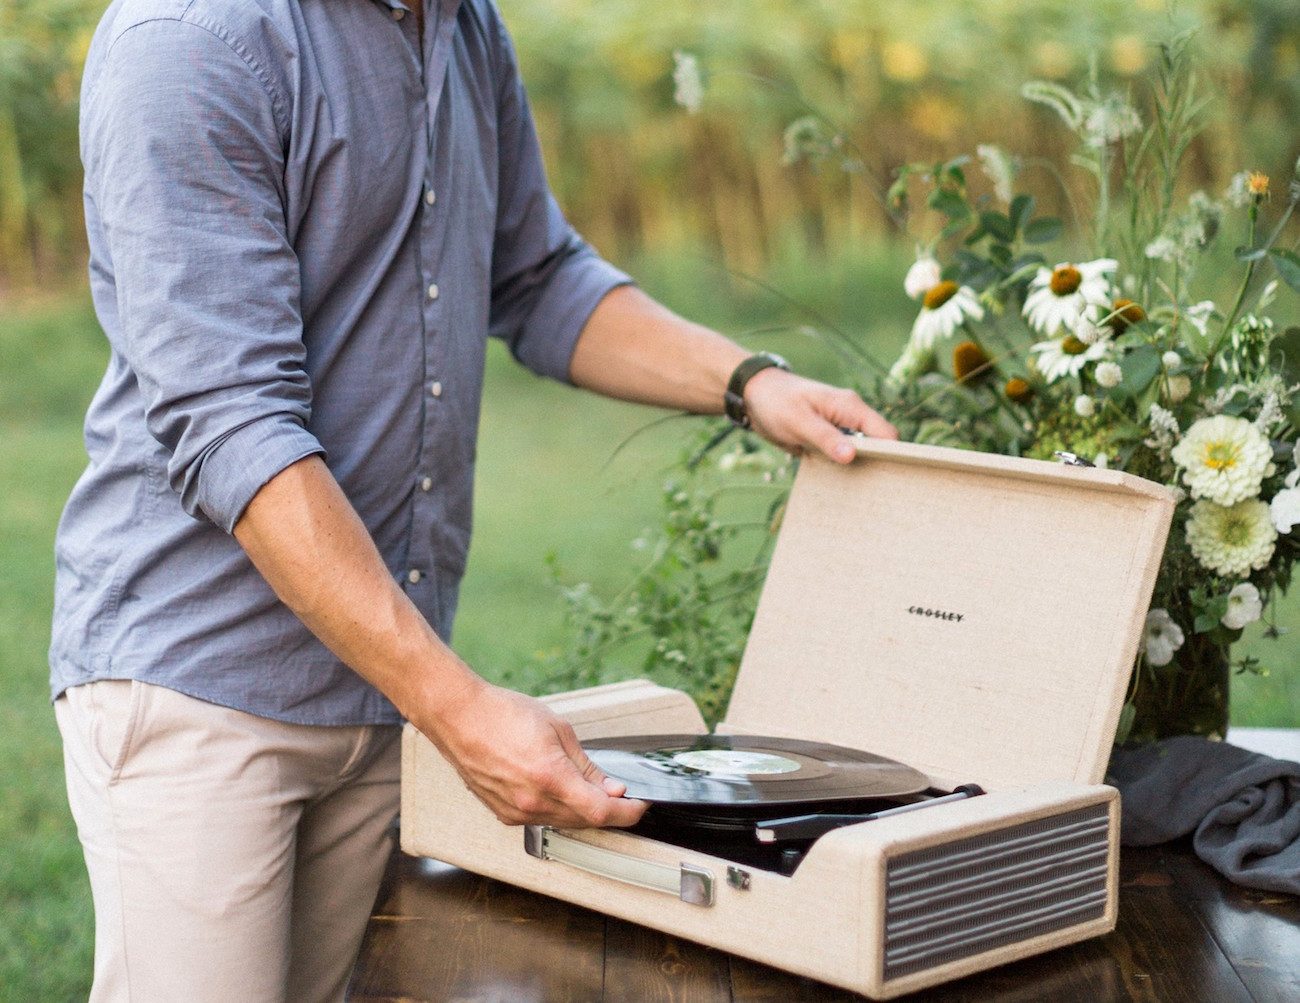 Crosley+Nomad+Portable+Turntable+With+Software